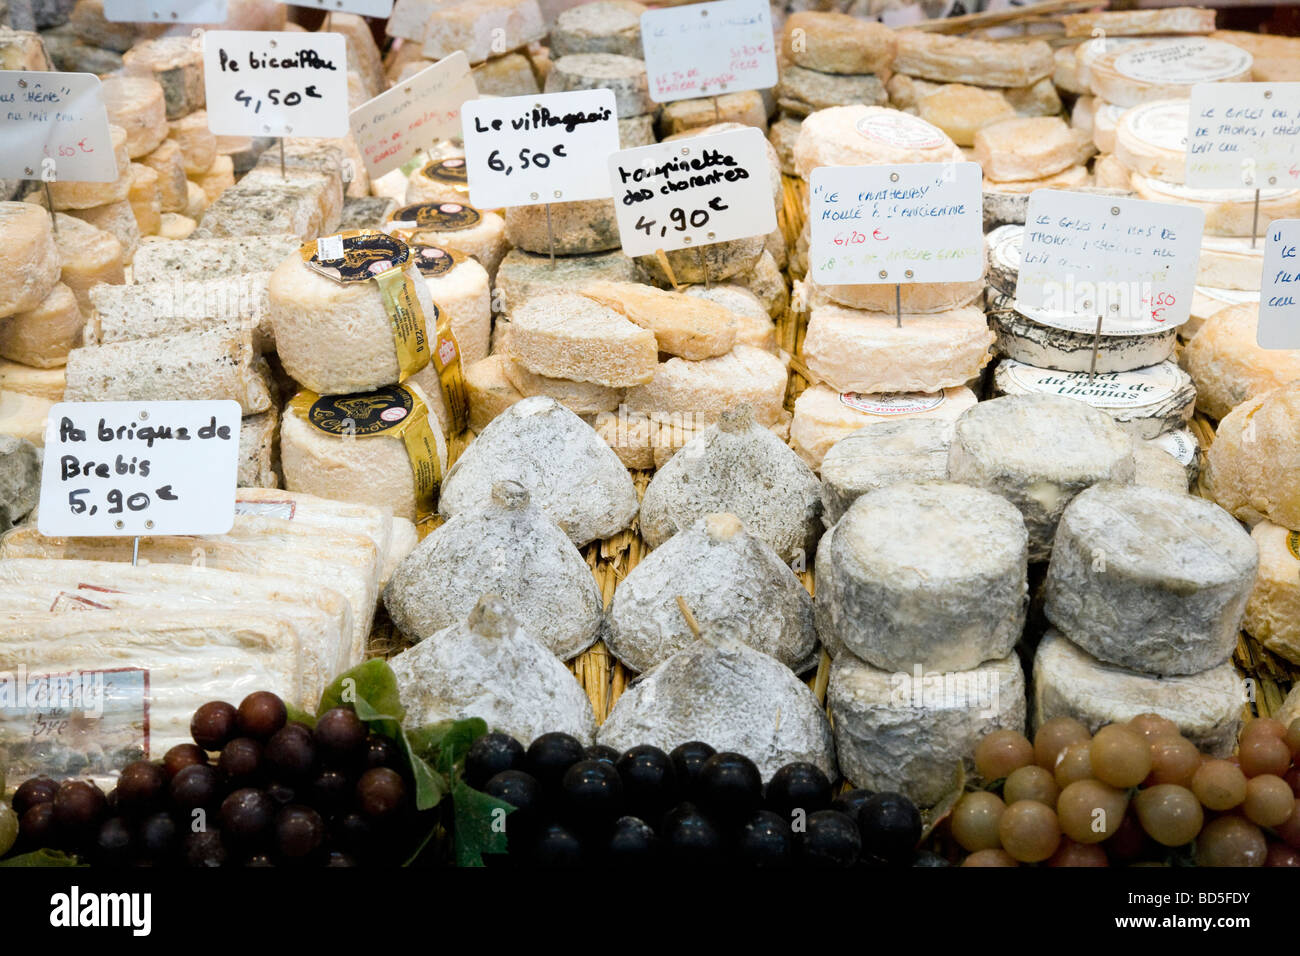 Fromagerie shop window - Stock Image